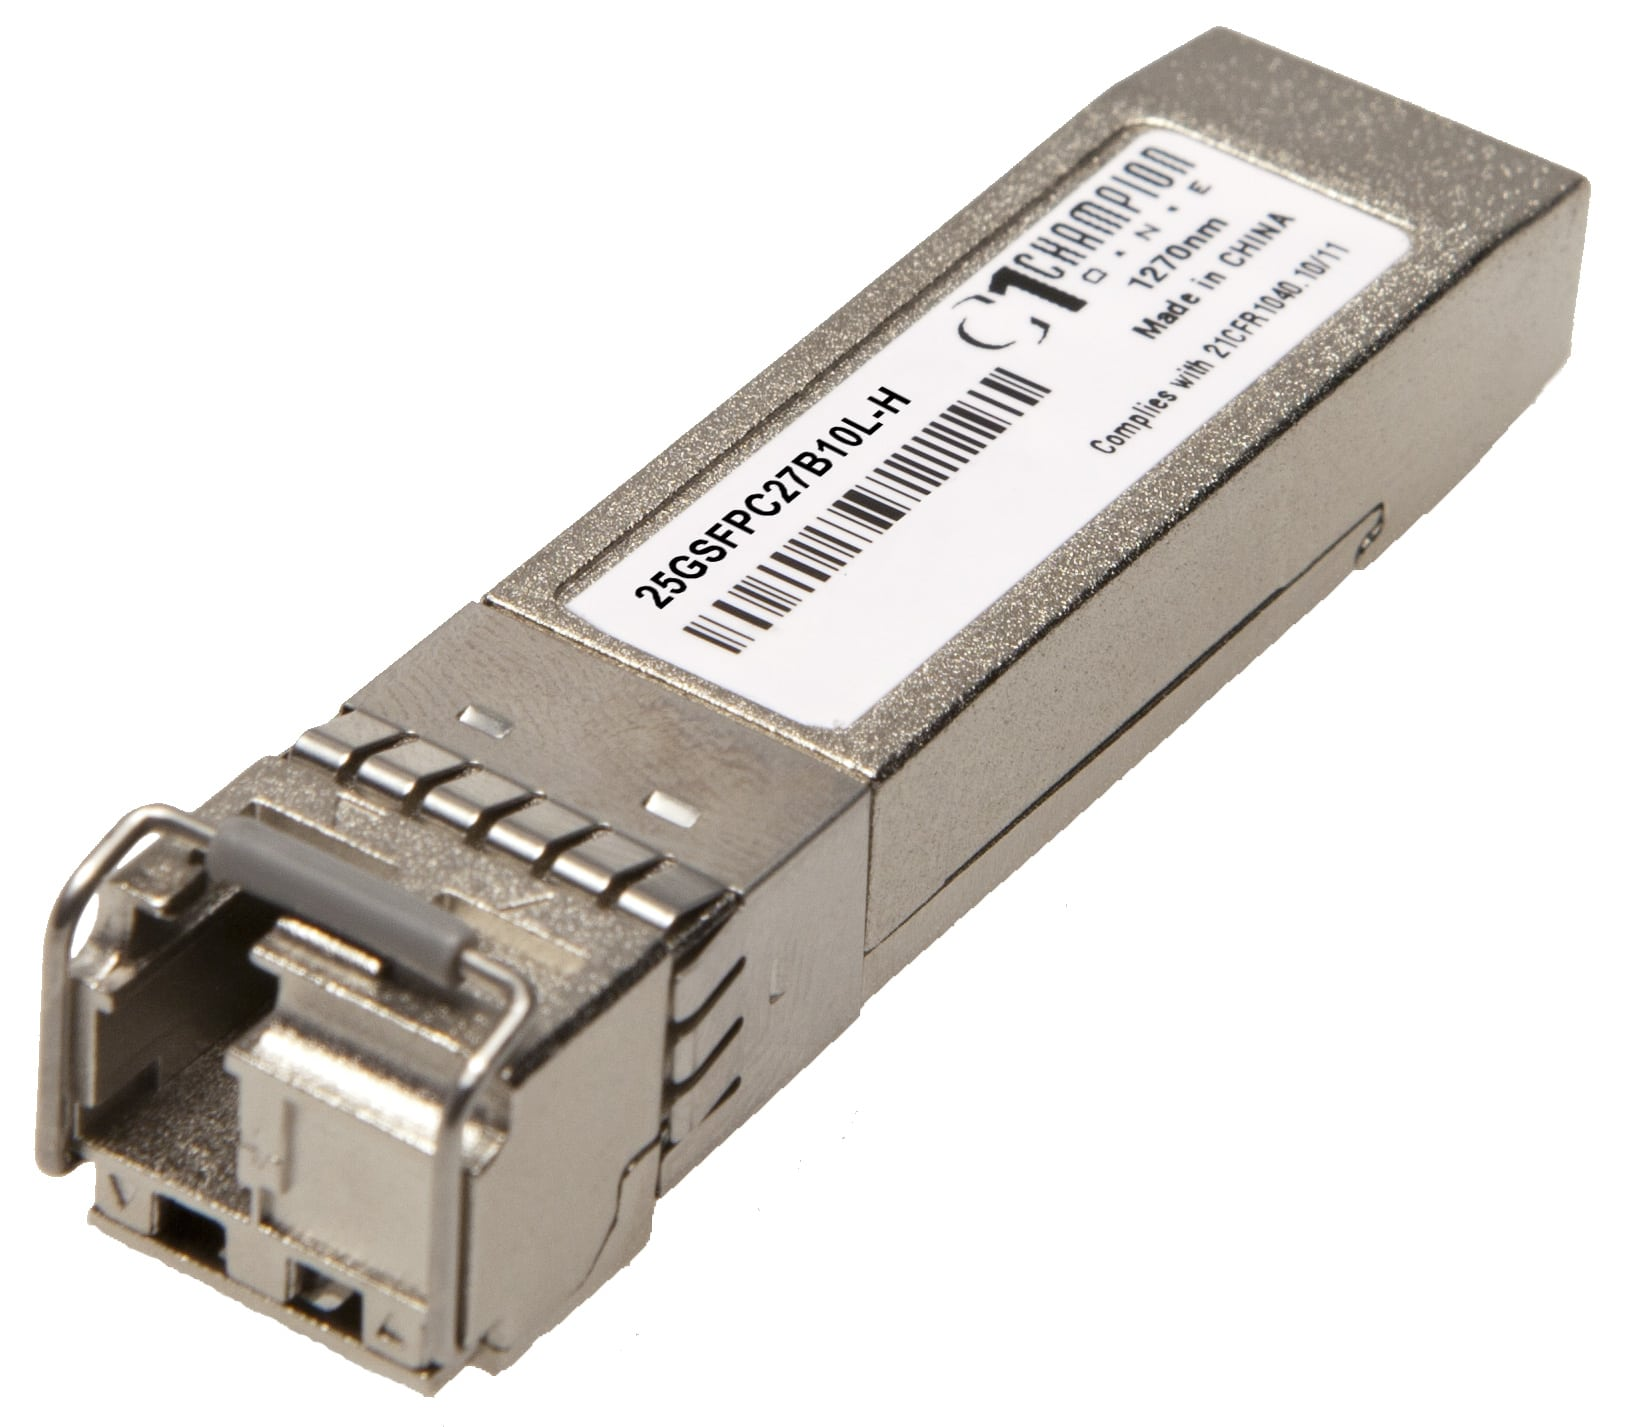 Single-Fiber 25G CPRI (option 10) SFP28 SMF 10km Hardened 1270Tx/1330Rx